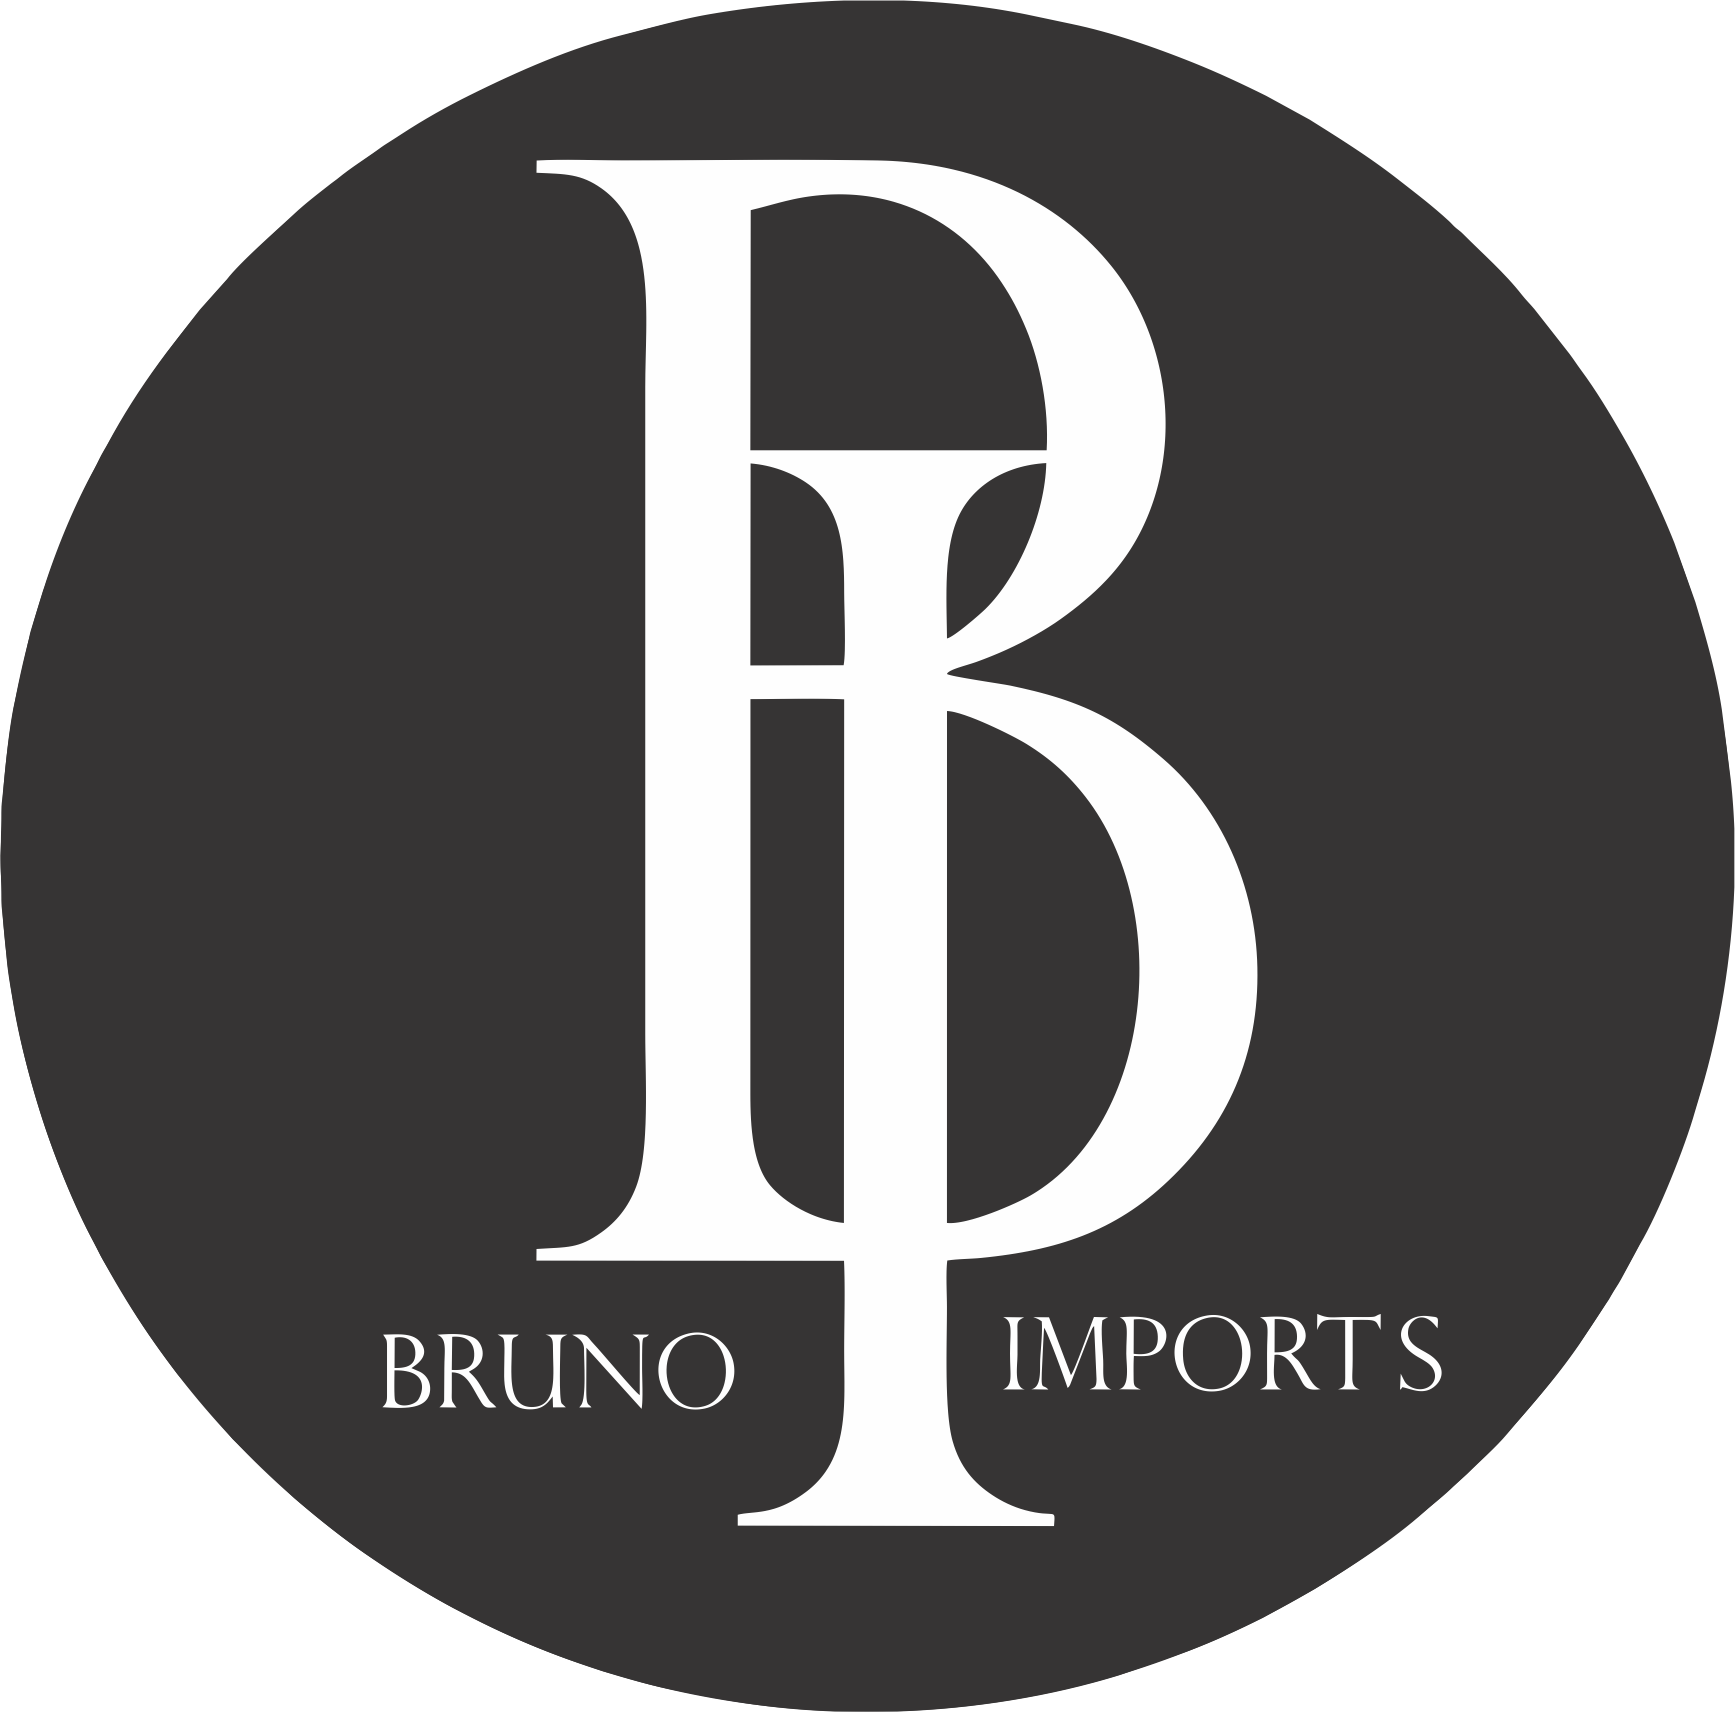 Bruno Import Logo